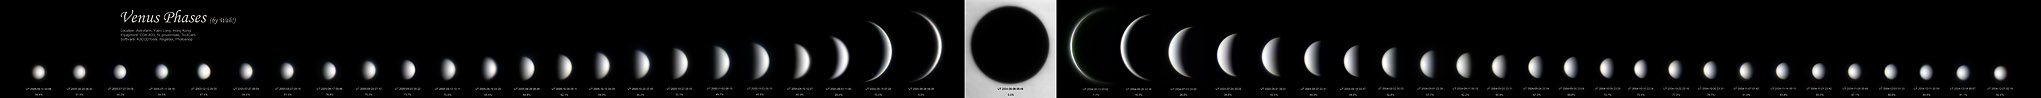 Venus_phases_small.jpg